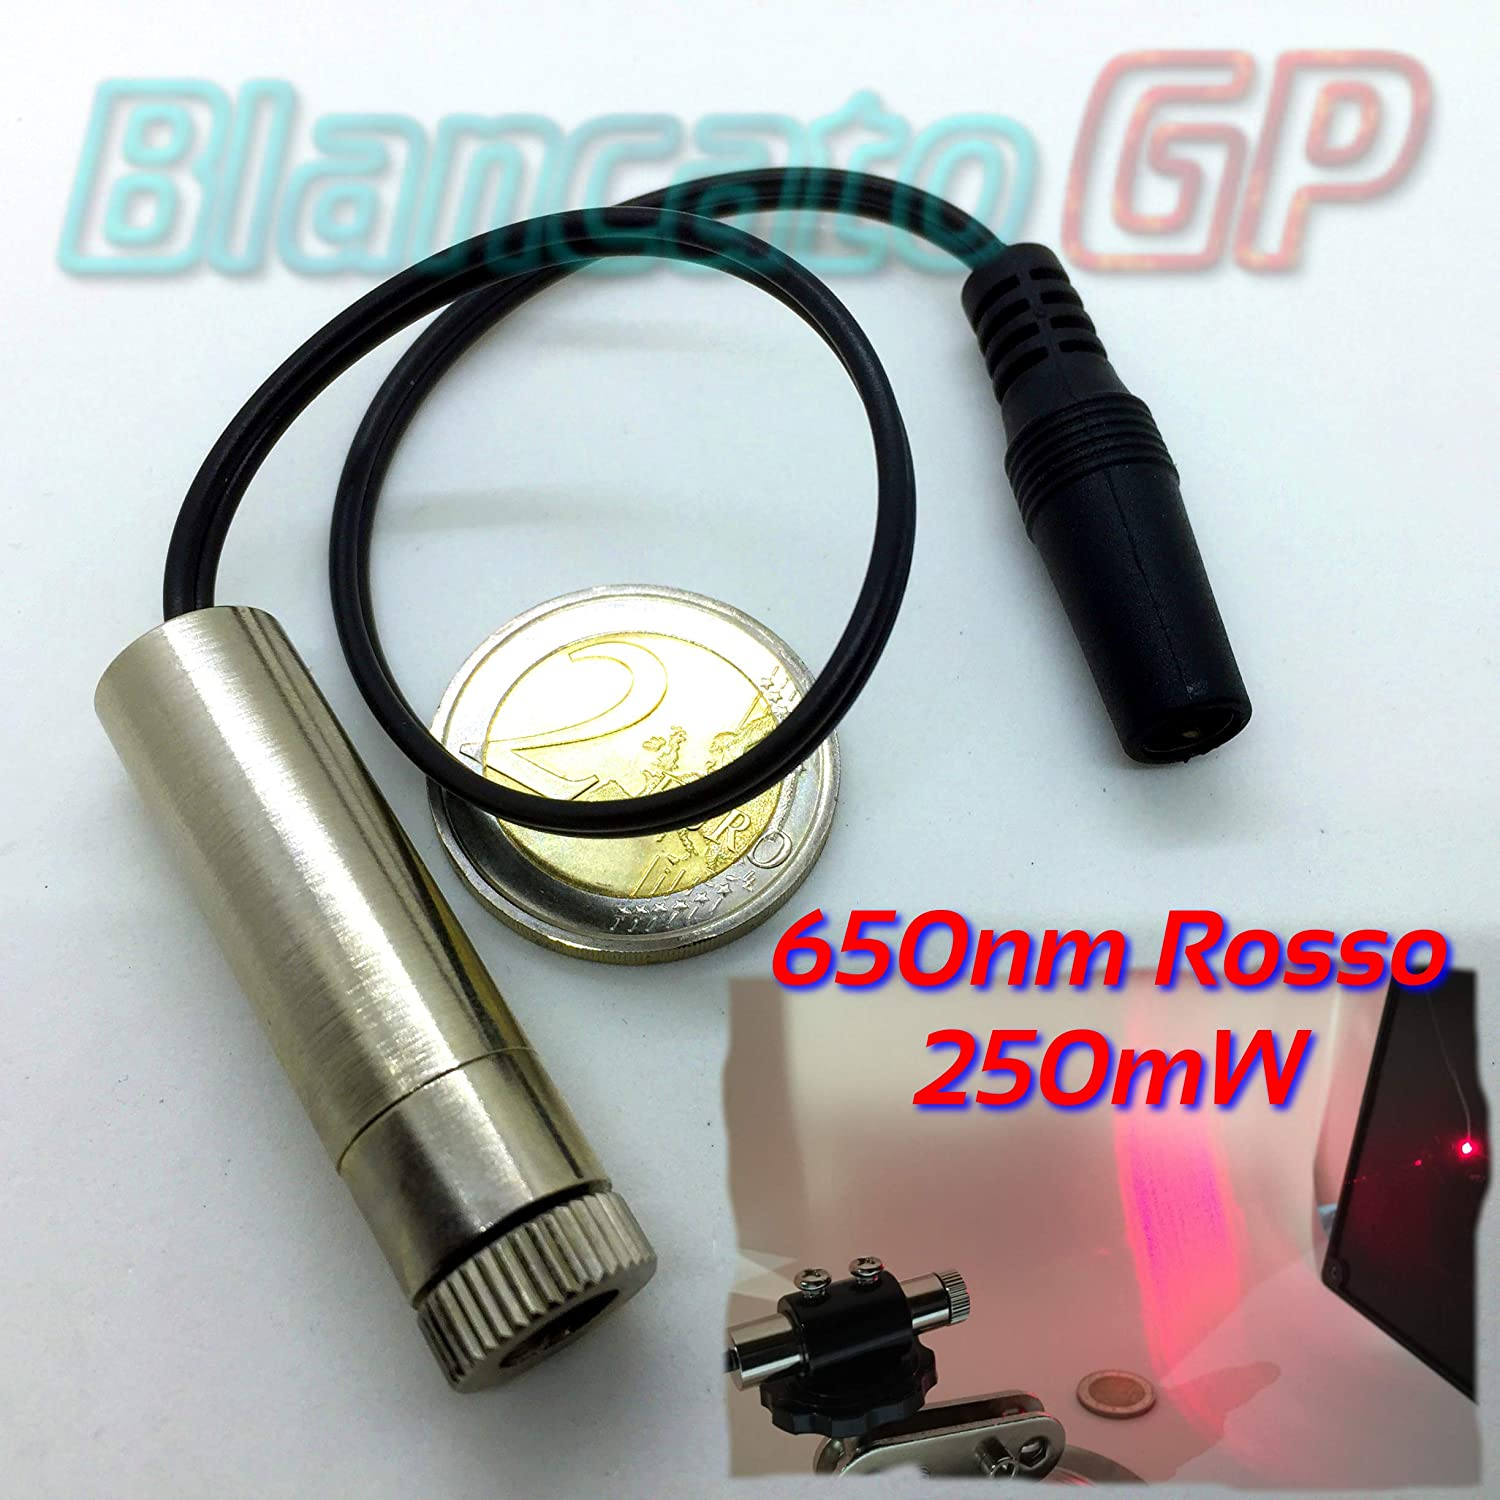 Module laser 650 nm 250 mW point rouge dot focusable module diode 3 V 5 V 2.1